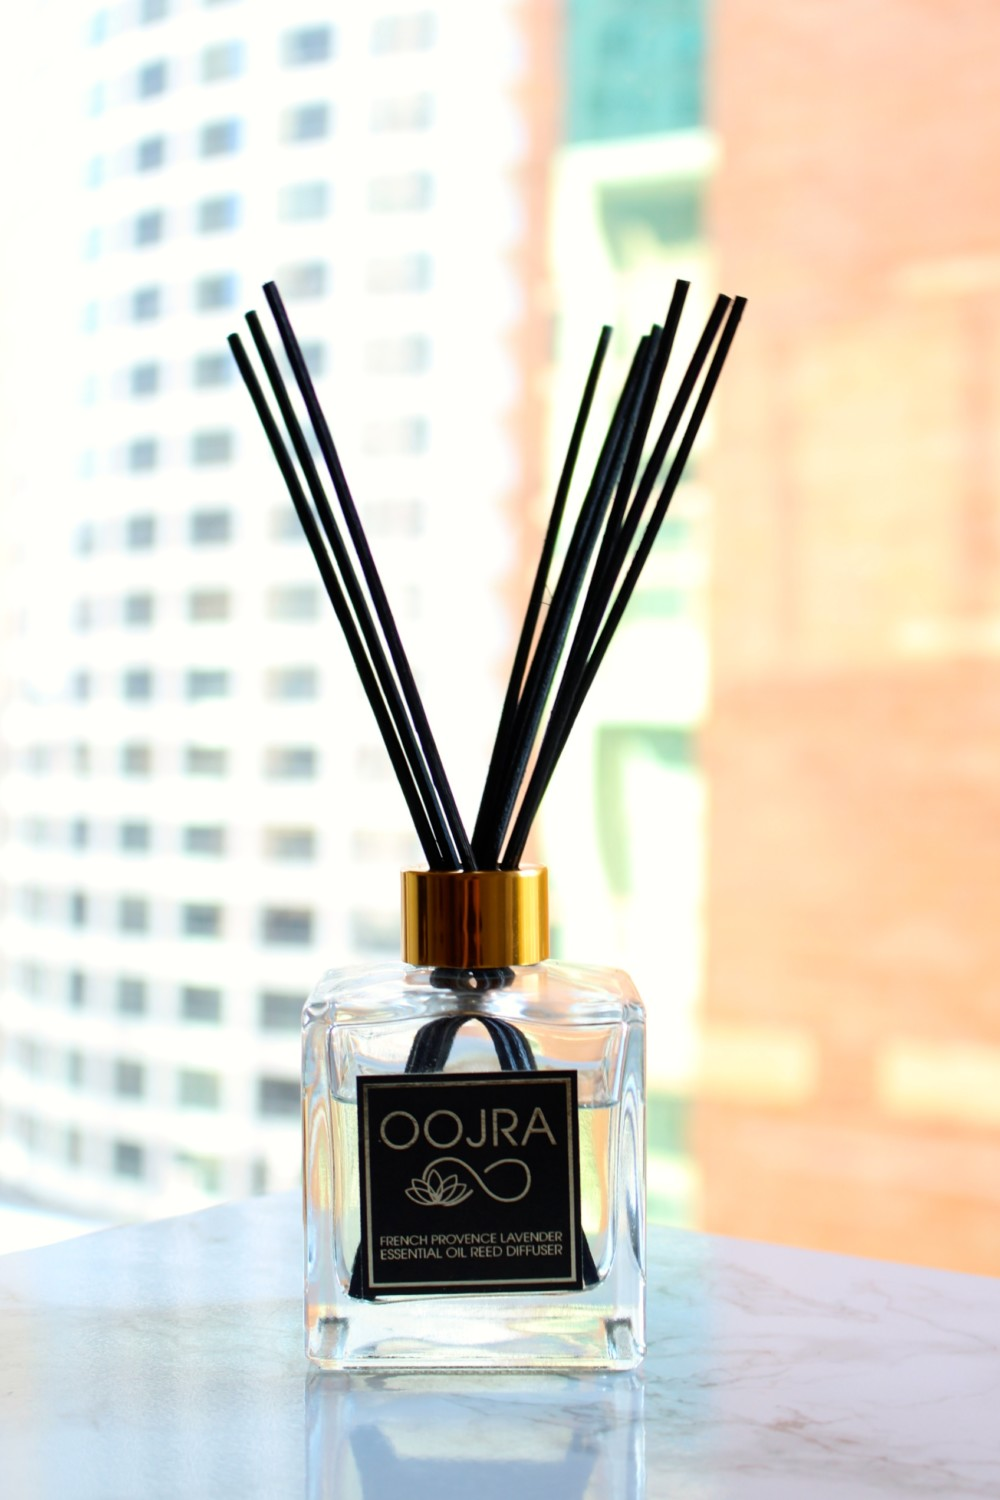 Oojra Review and Giveaway